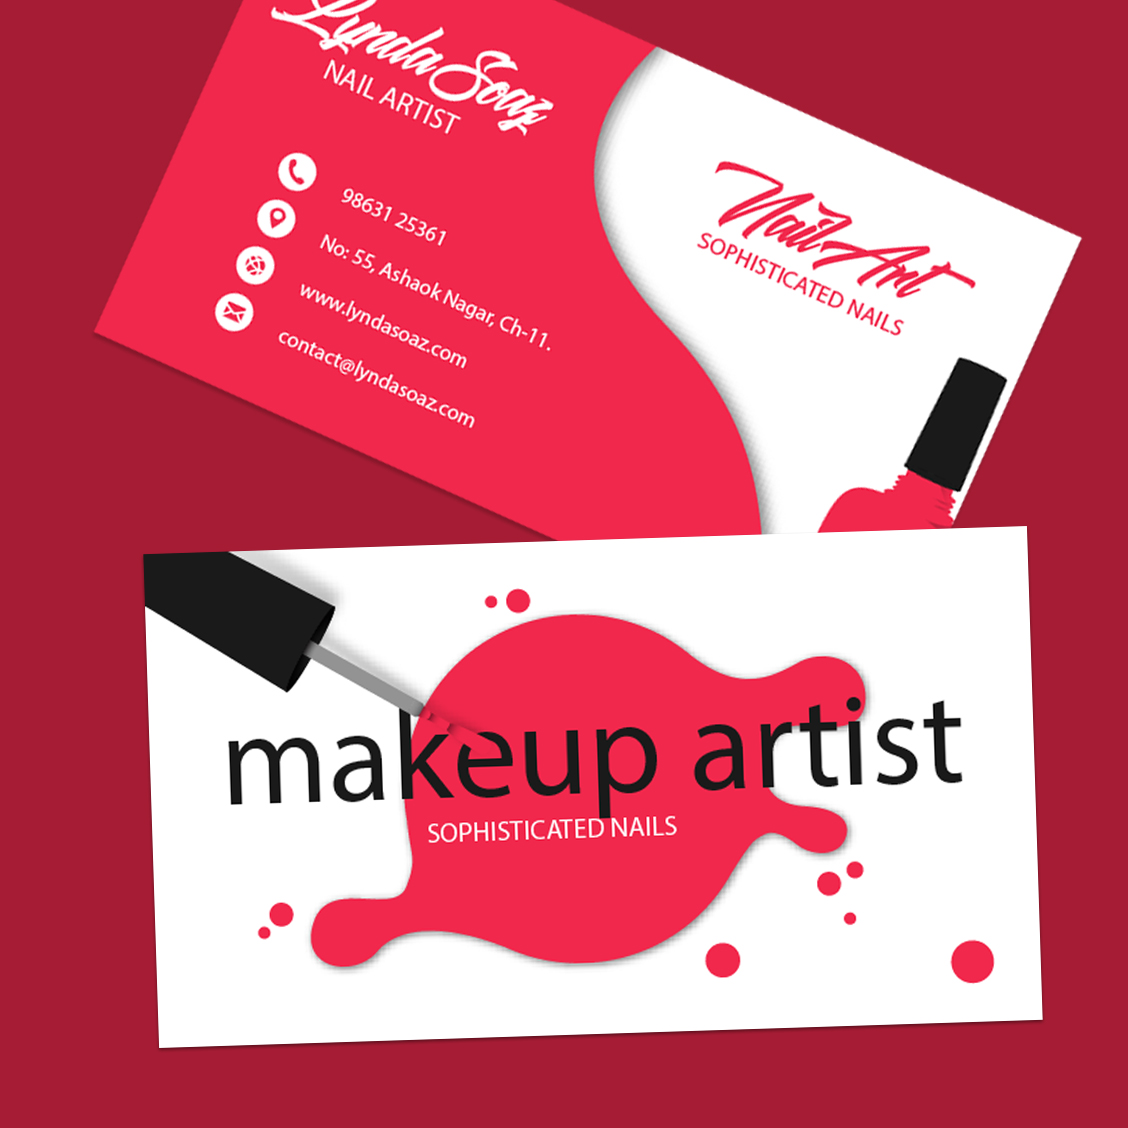 business card for makeup artist cards - آرایشی